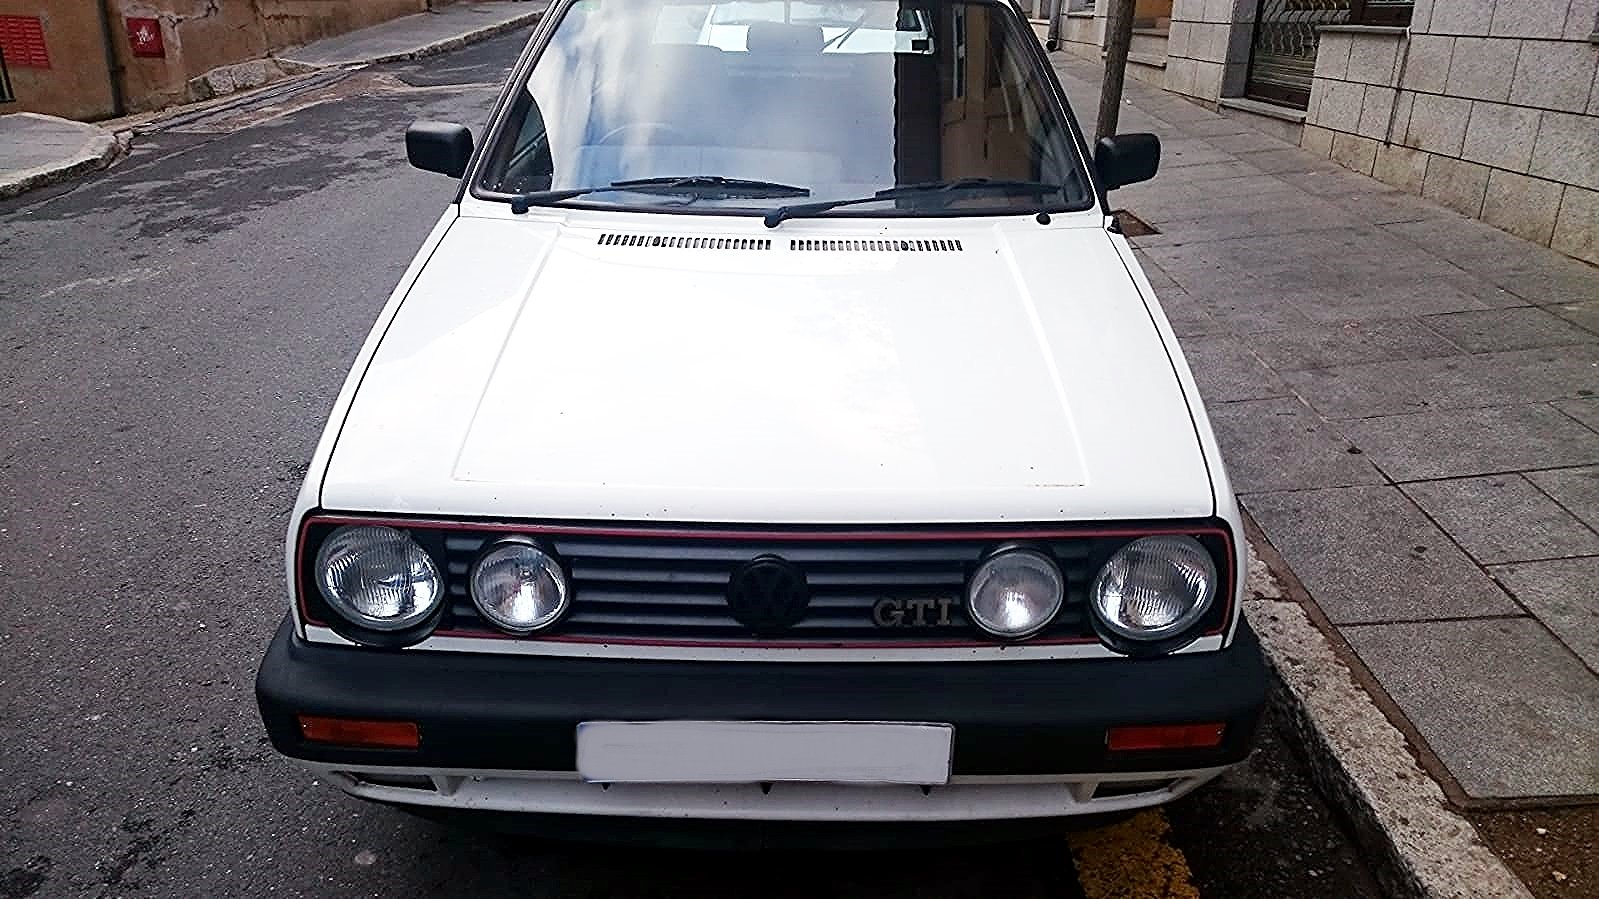 1990 VW GOLF GTI 8V RHD BUT LIVED IN SPAIN PAST 16 YRS For Sale (picture 3 of 6)